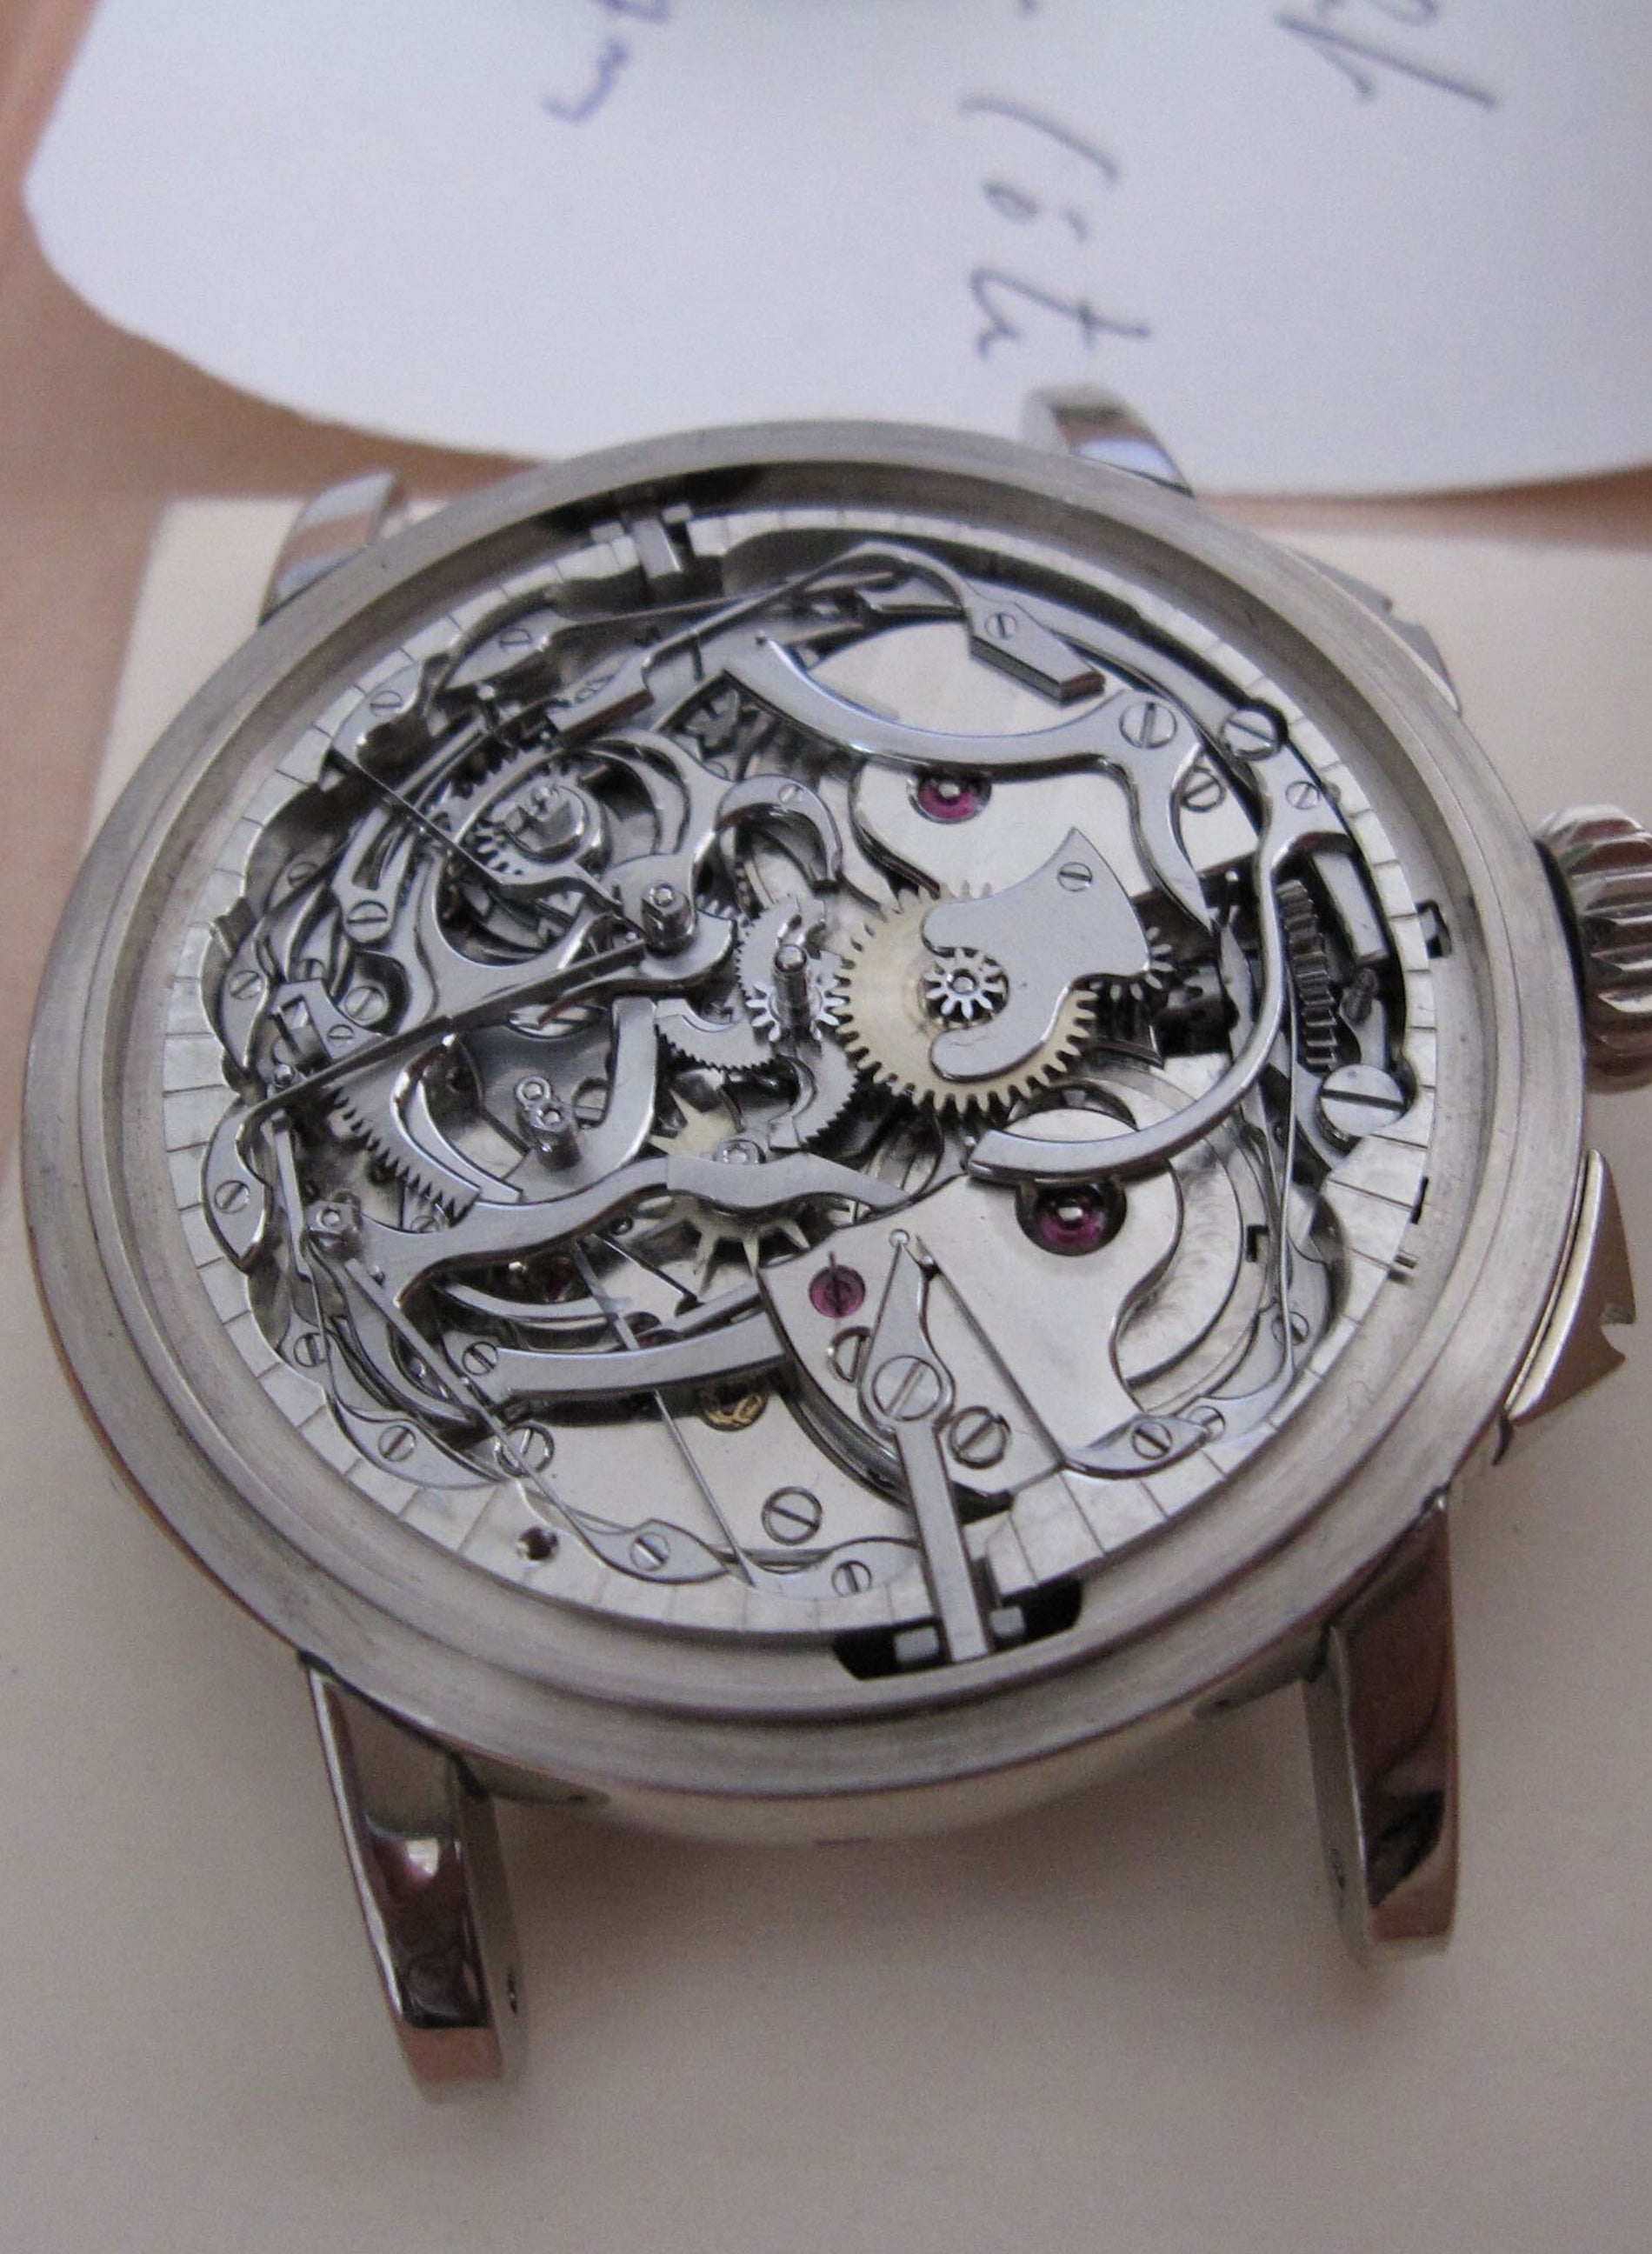 Philippe Dufour Grande Sonnerie minute-repeater sold at Christie's in 2008 from Michael Hickox for A Collected Man London